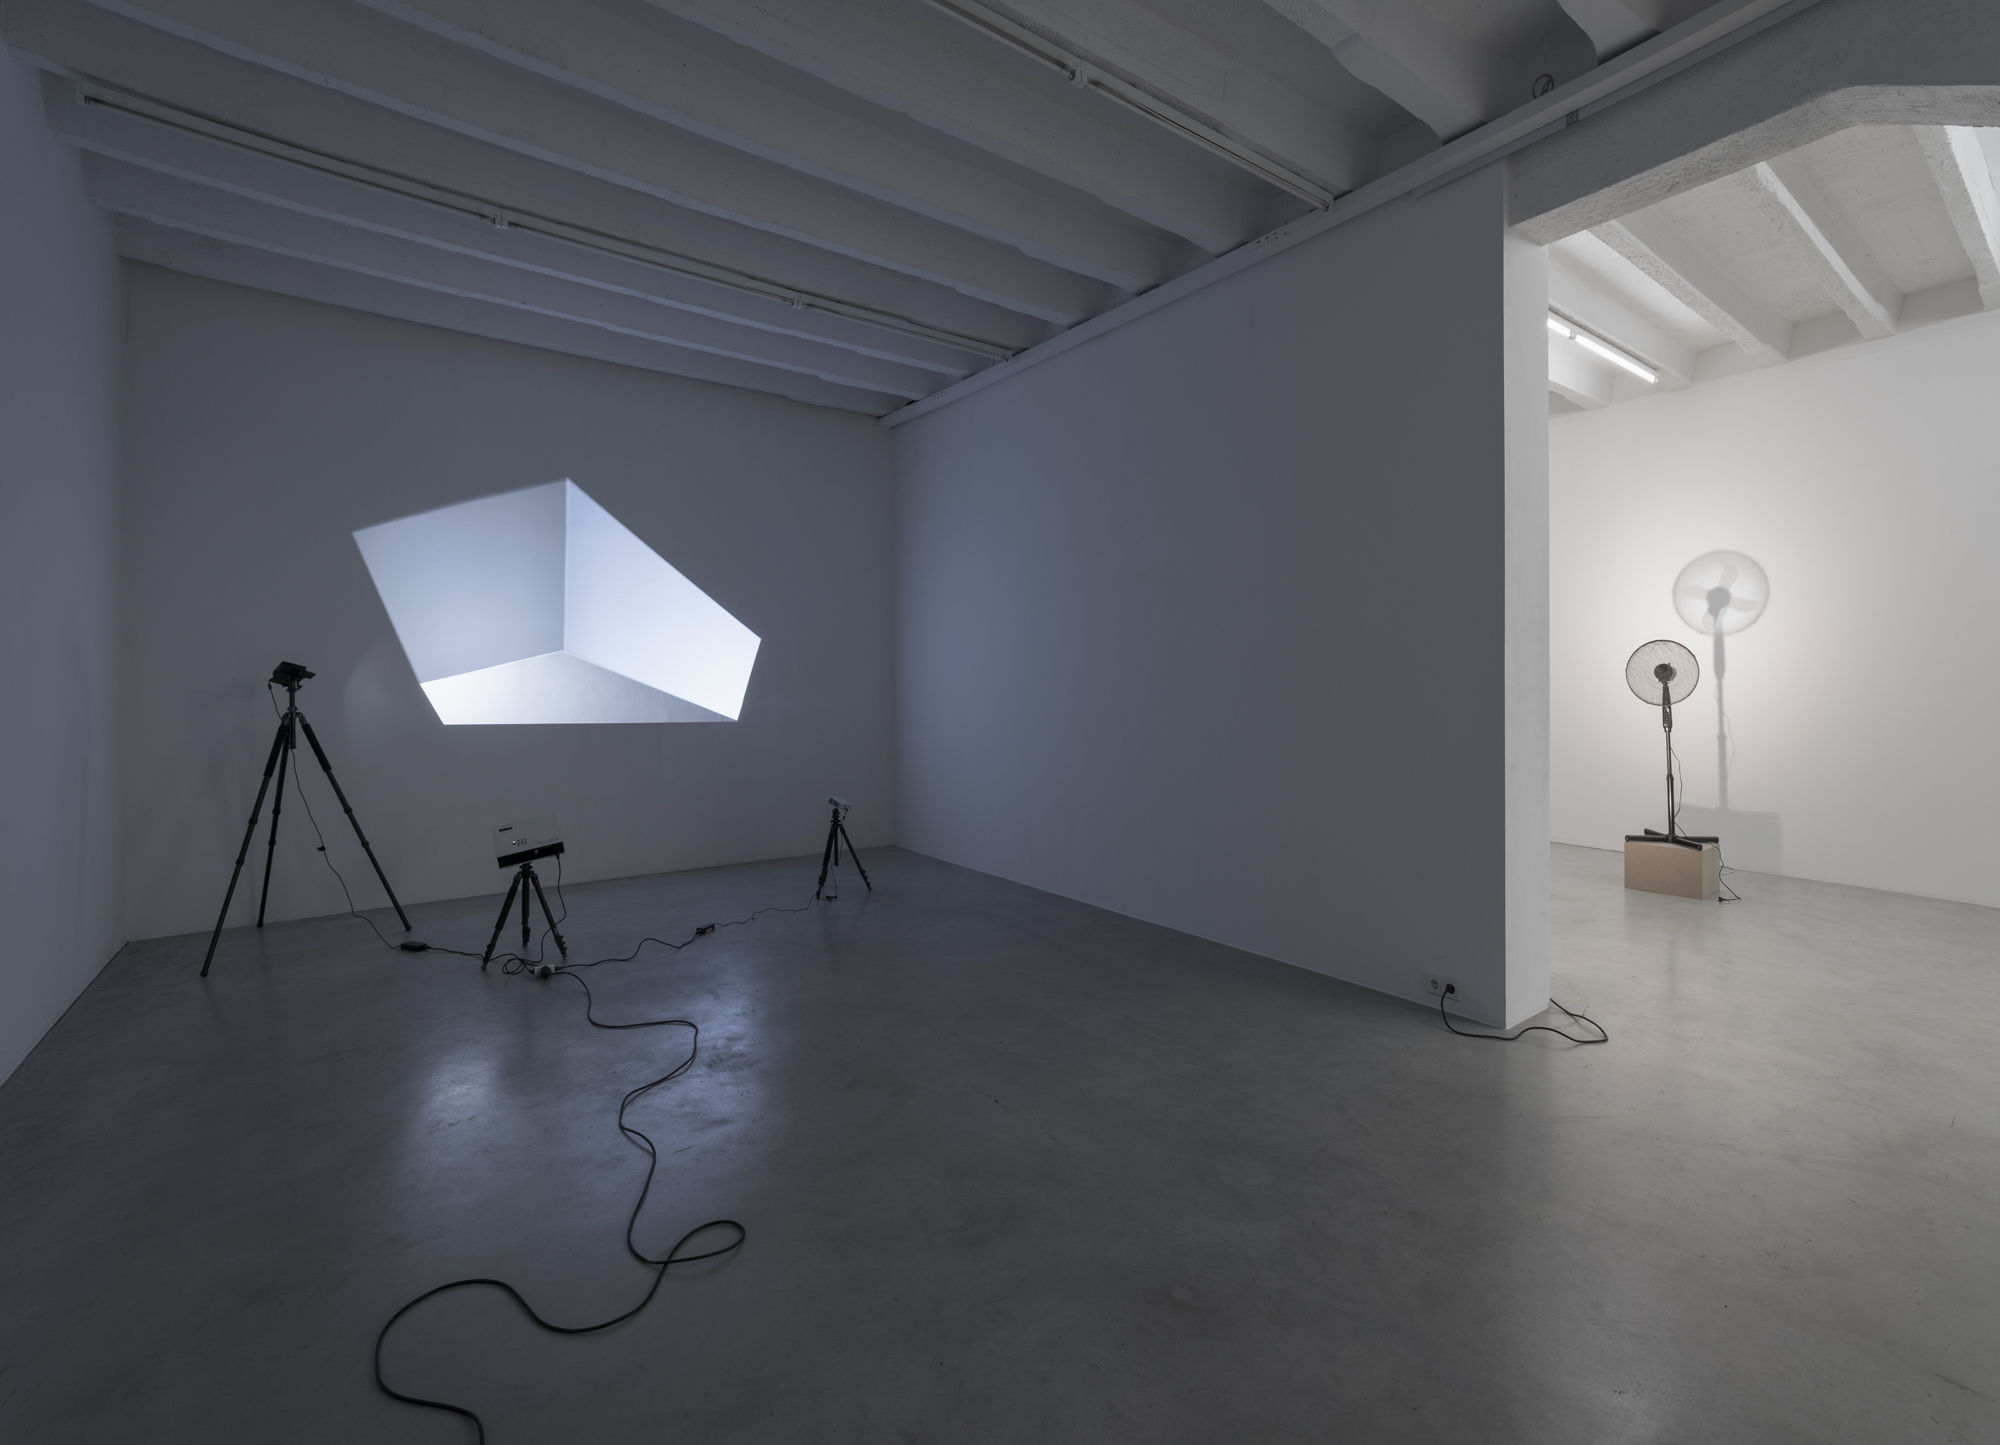 Vadim Fishkin, Light Solidarity, exhibition view at Galerija Gregor Podnar, Berlin, 2017. Photo: Marcus Schneider